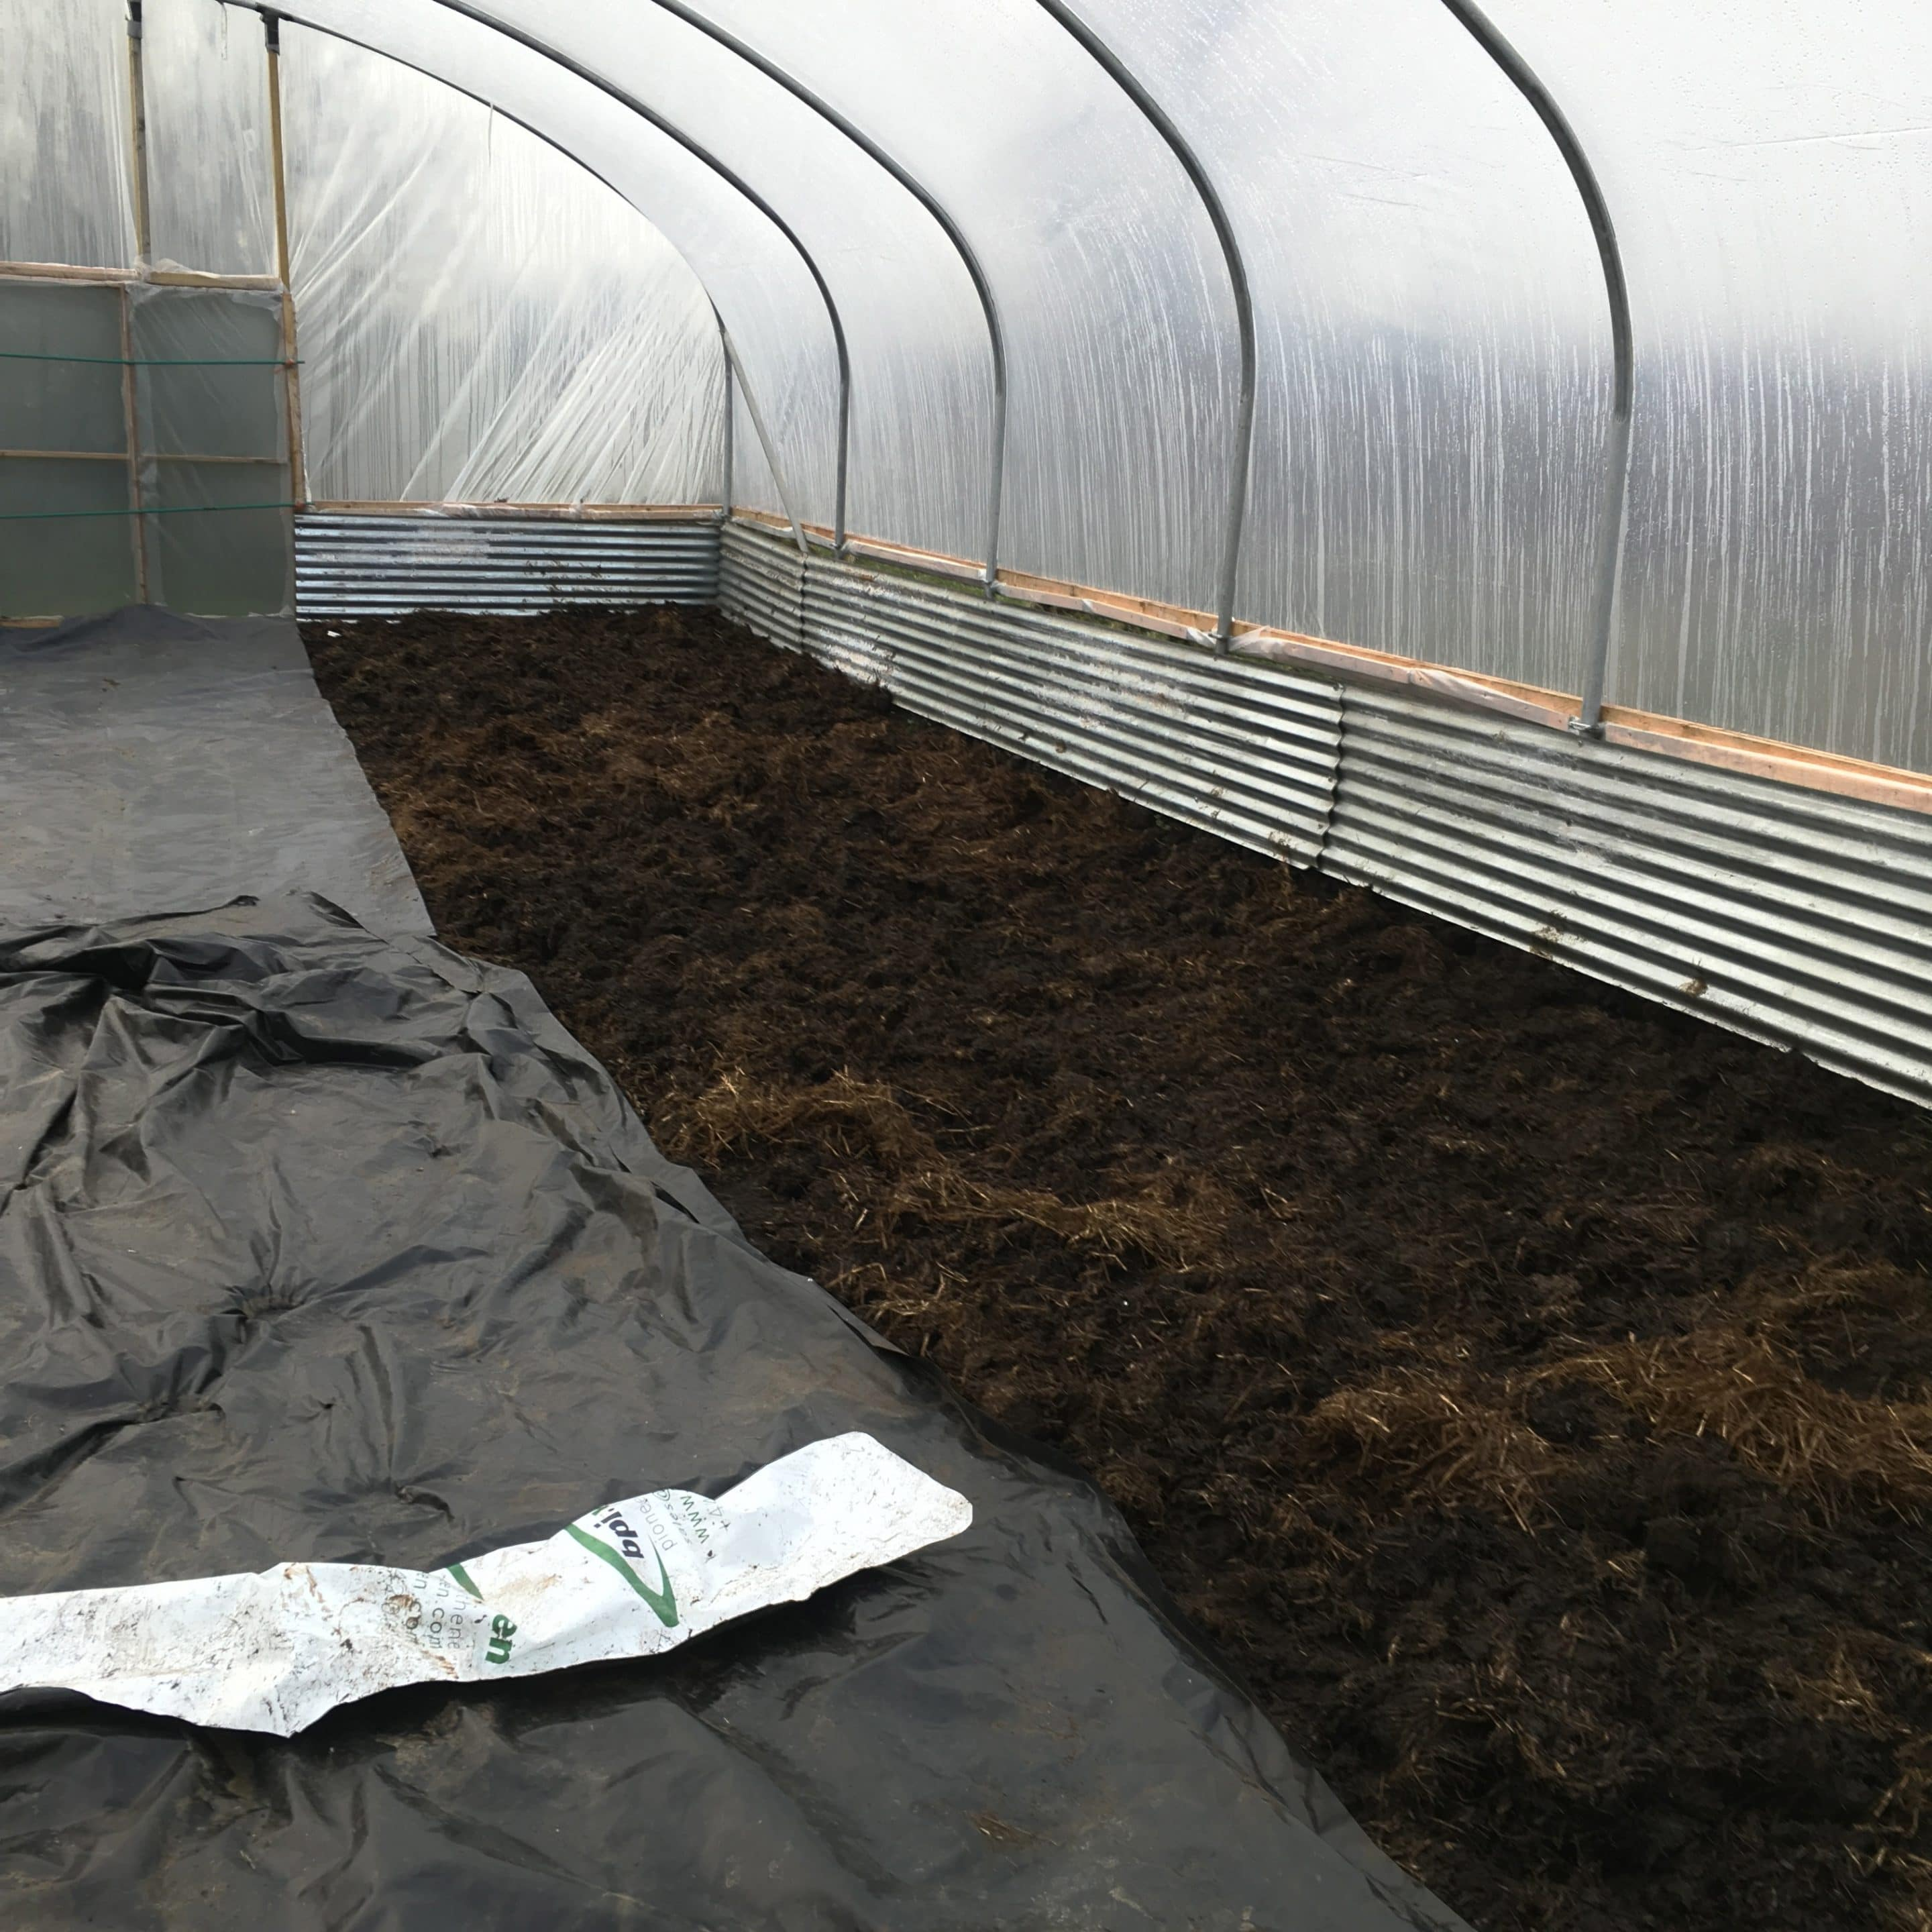 no dig gardening charles dowling polytunnel